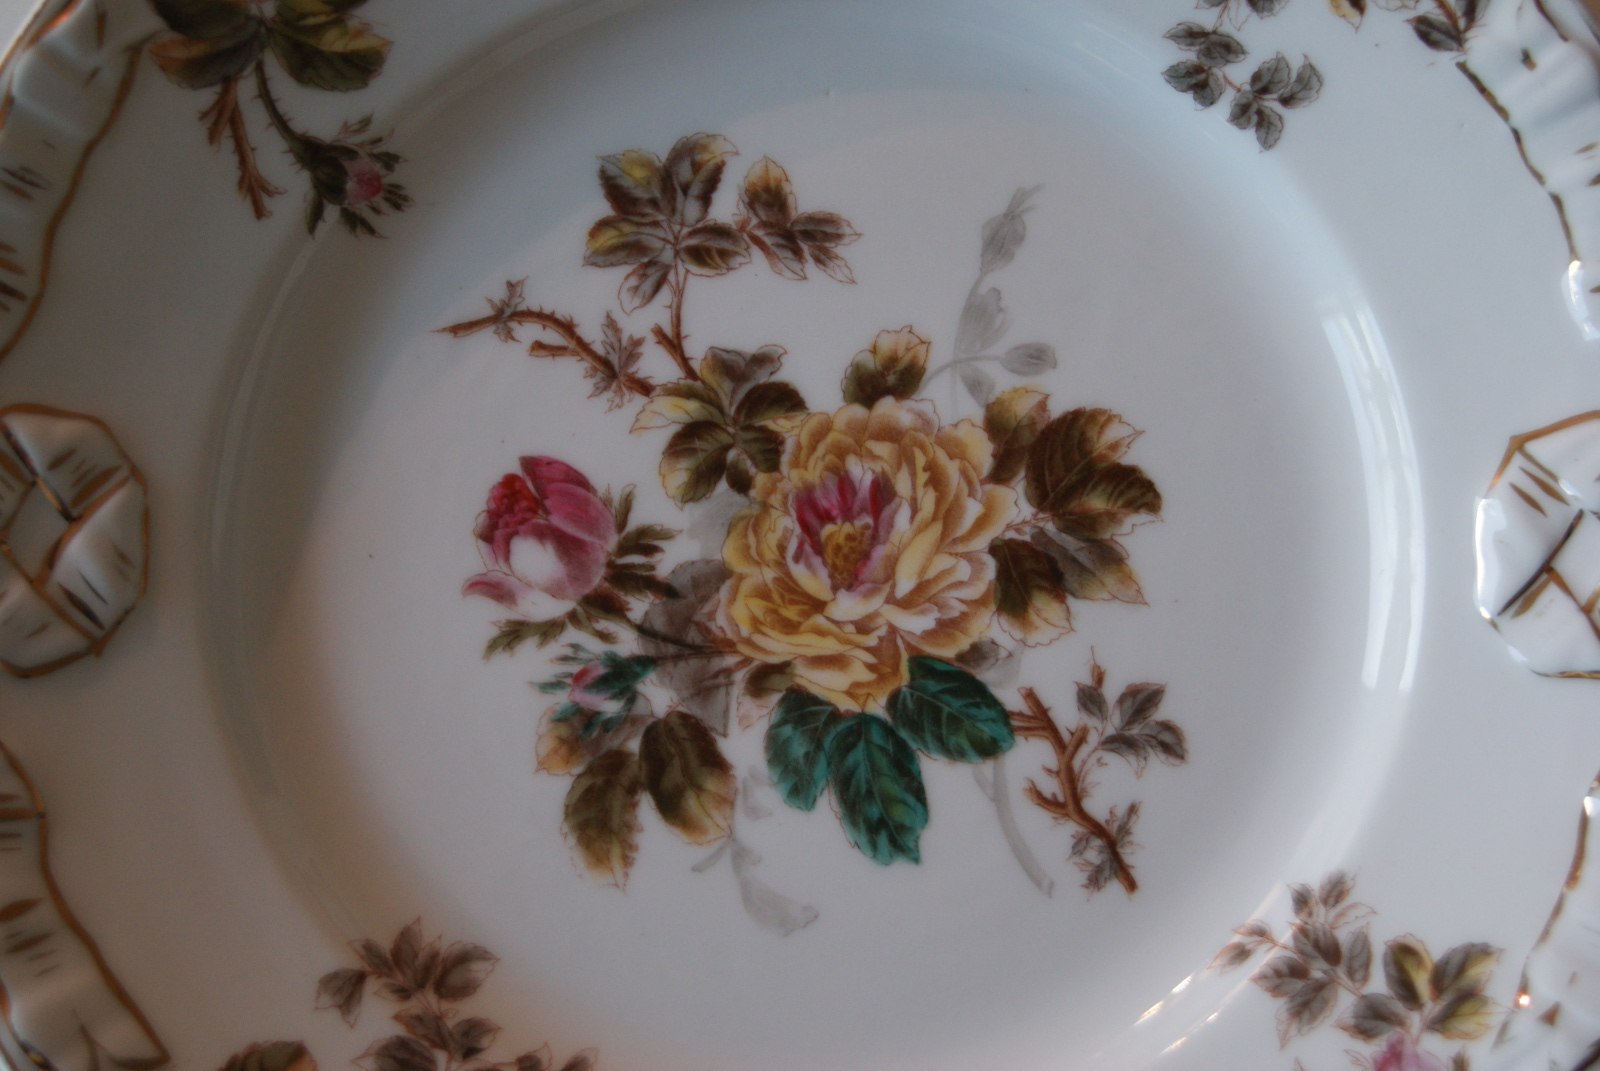 Waldenburg - Altwasser dish with bouquet yellow red flowers roses leaves and relief